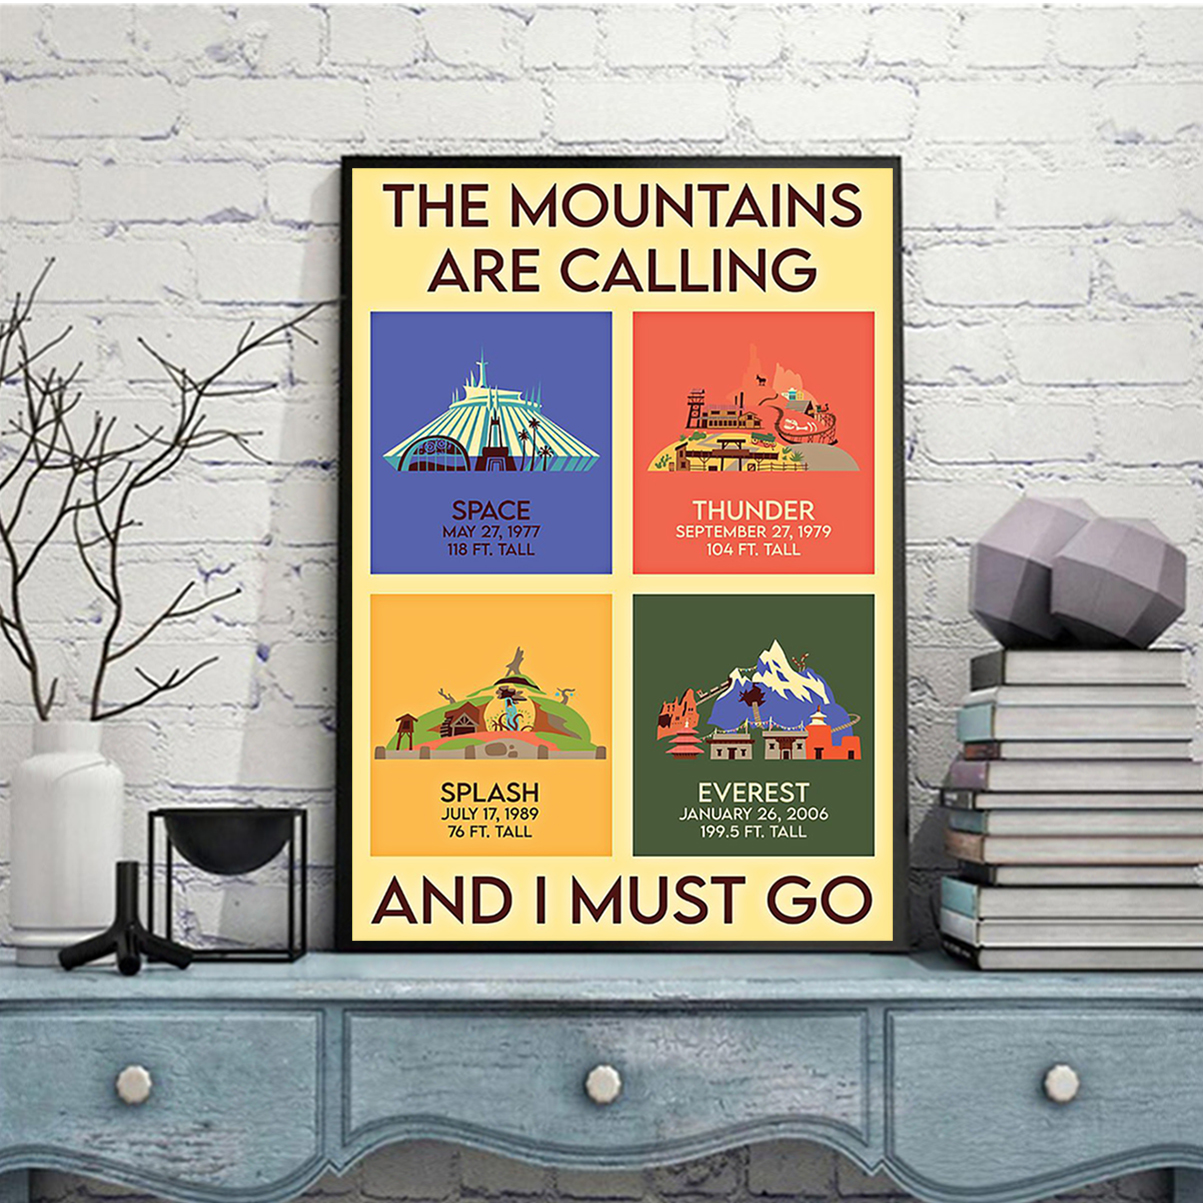 The mountains are calling and I must go poster A2